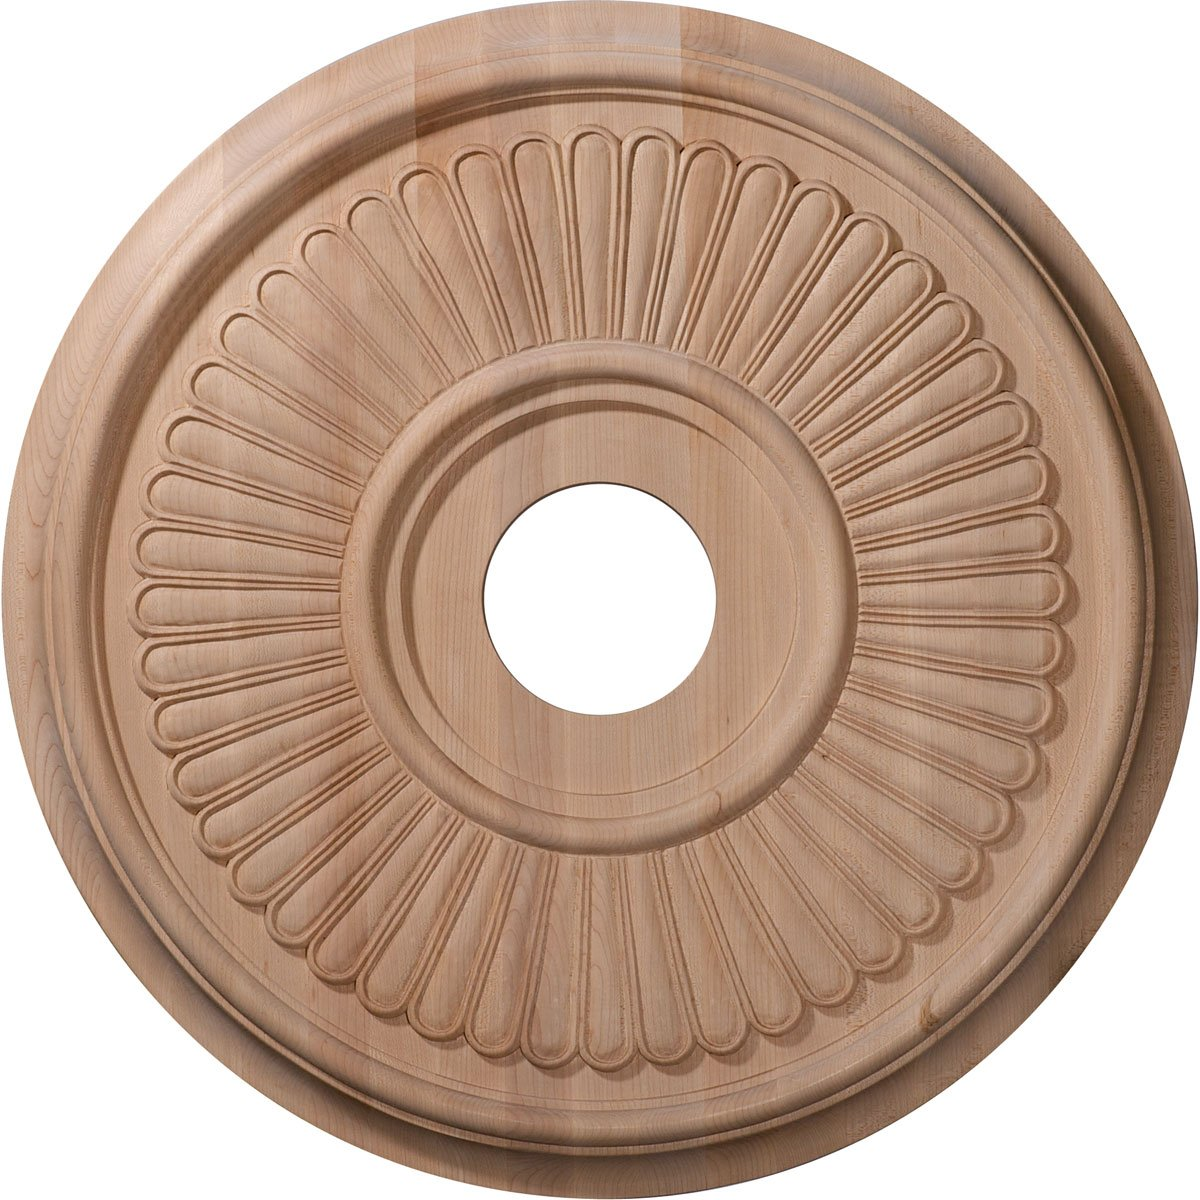 Ekena Millwork CMW16BEMA 16-Inch OD x 1 1/8-Inch P Carved Berkshire Ceiling Medallion, Maple